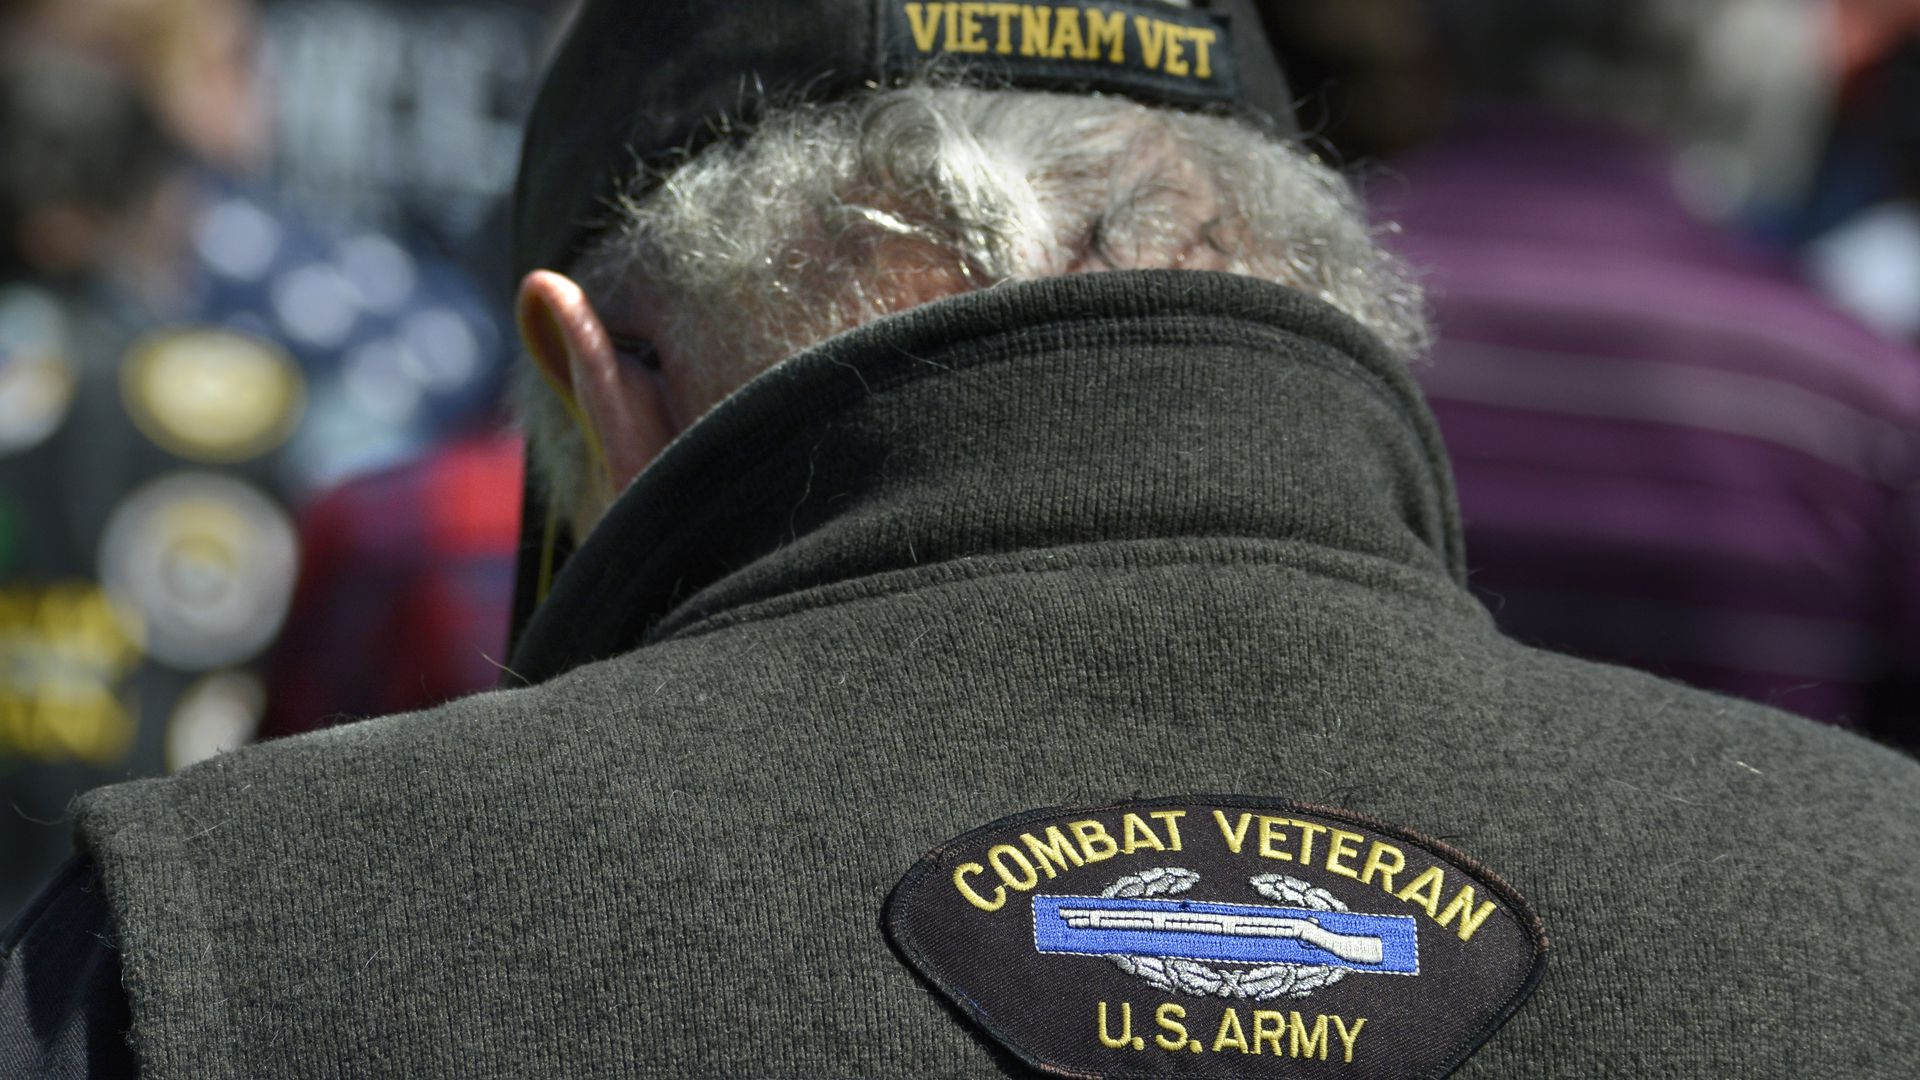 Photo of a man wearing a vest and a hat with Vietnam veteran patches